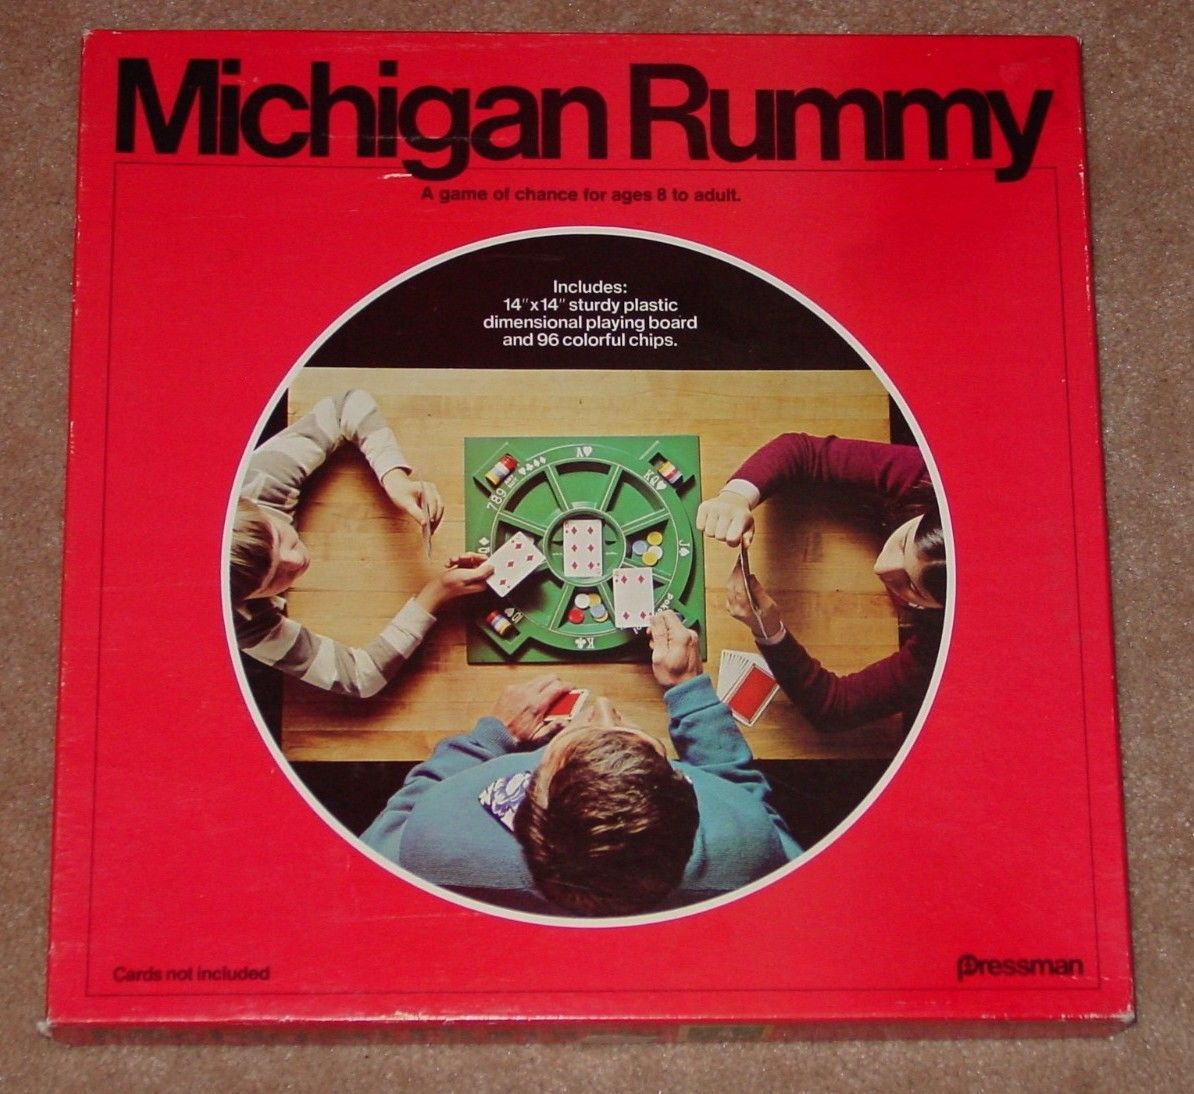 Primary image for MICHIGAN RUMMY CARD GAME 1977 PRESSMAN COMPLETE FACTORY SEALED CHIPS UNUSED GAME